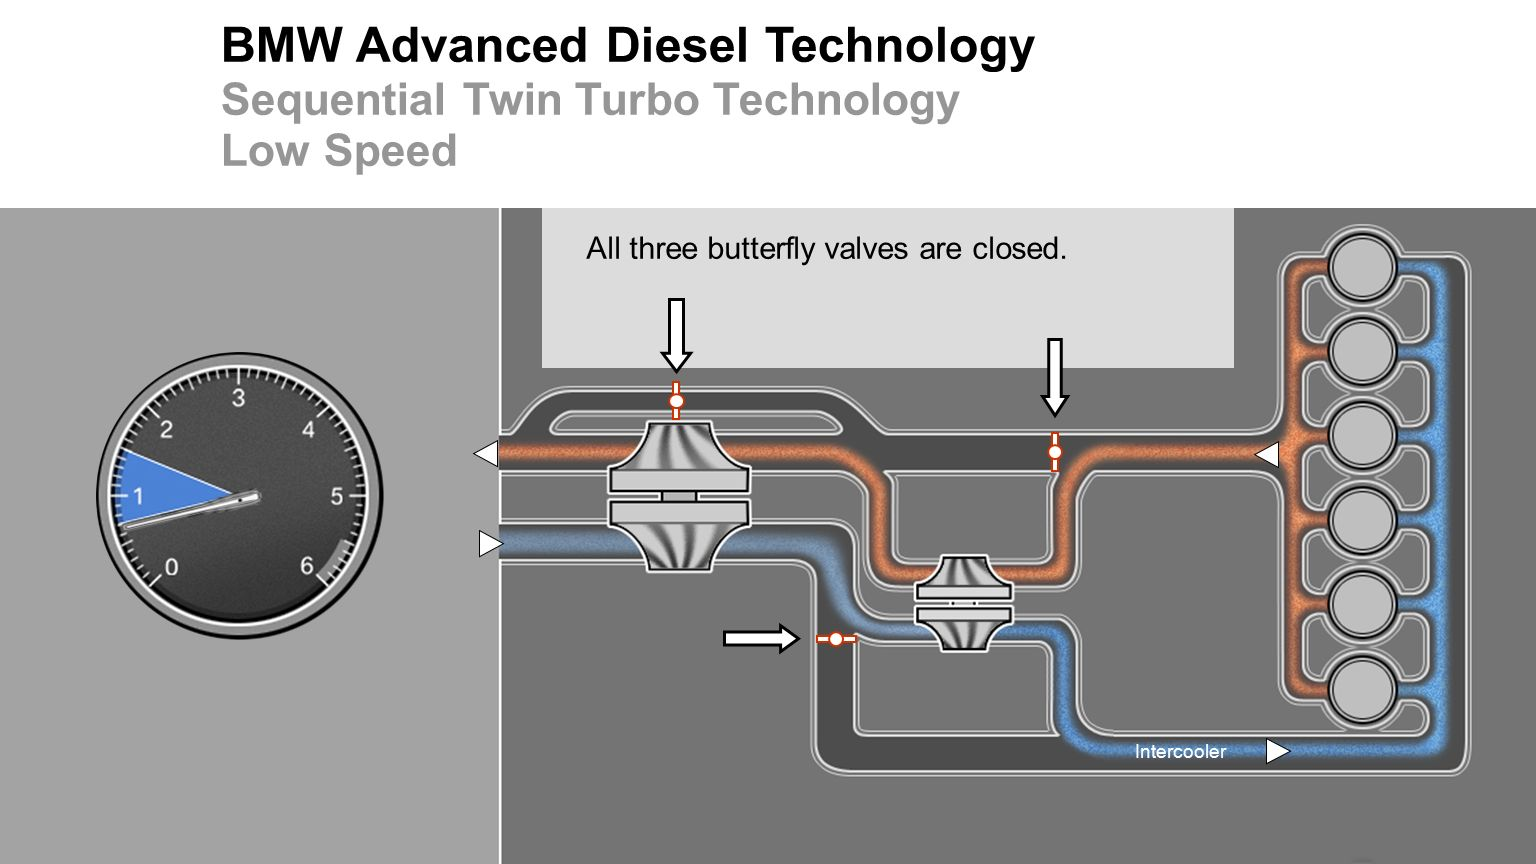 hight resolution of bmw advanced diesel technology sequential twin turbo technology low speed